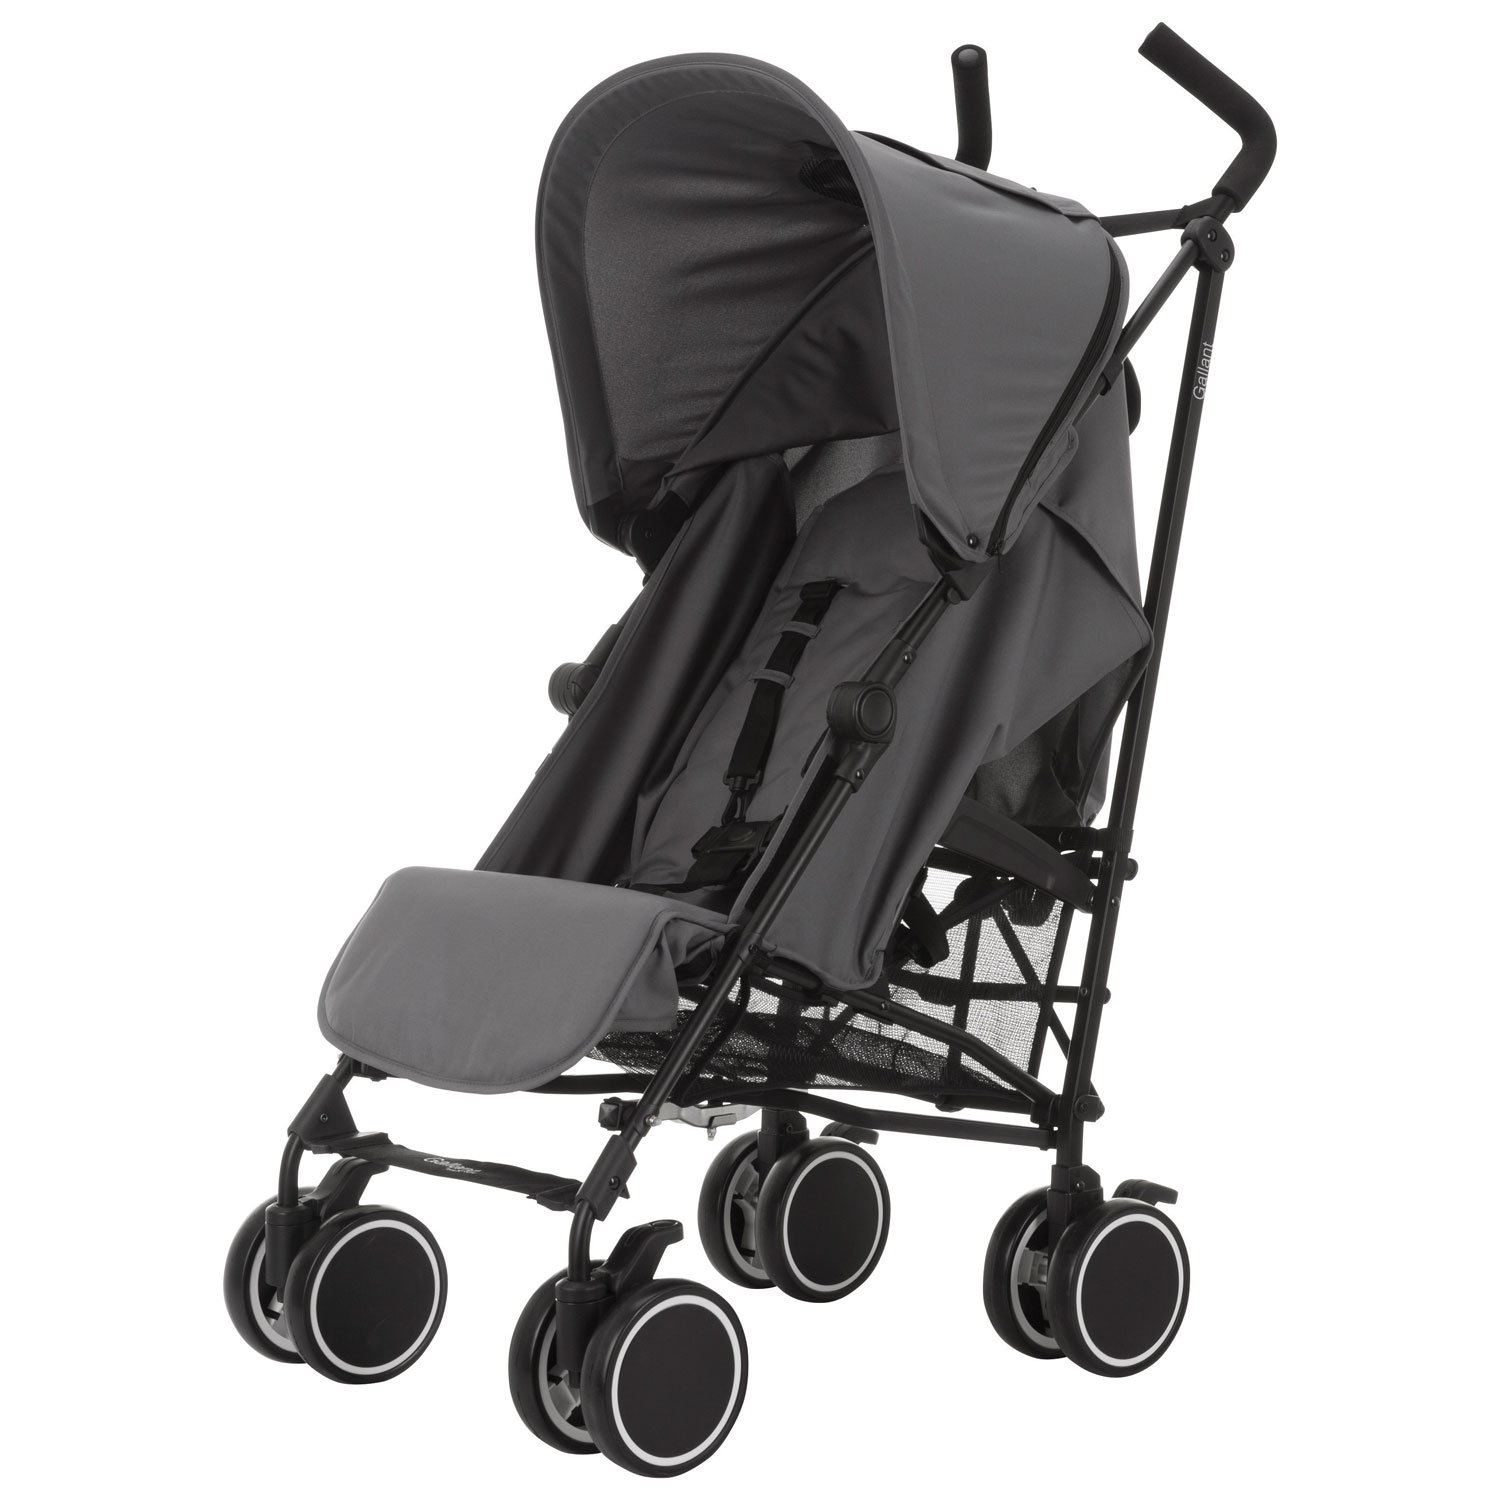 stroller buying guide - guzzie and guss lightweight stroller